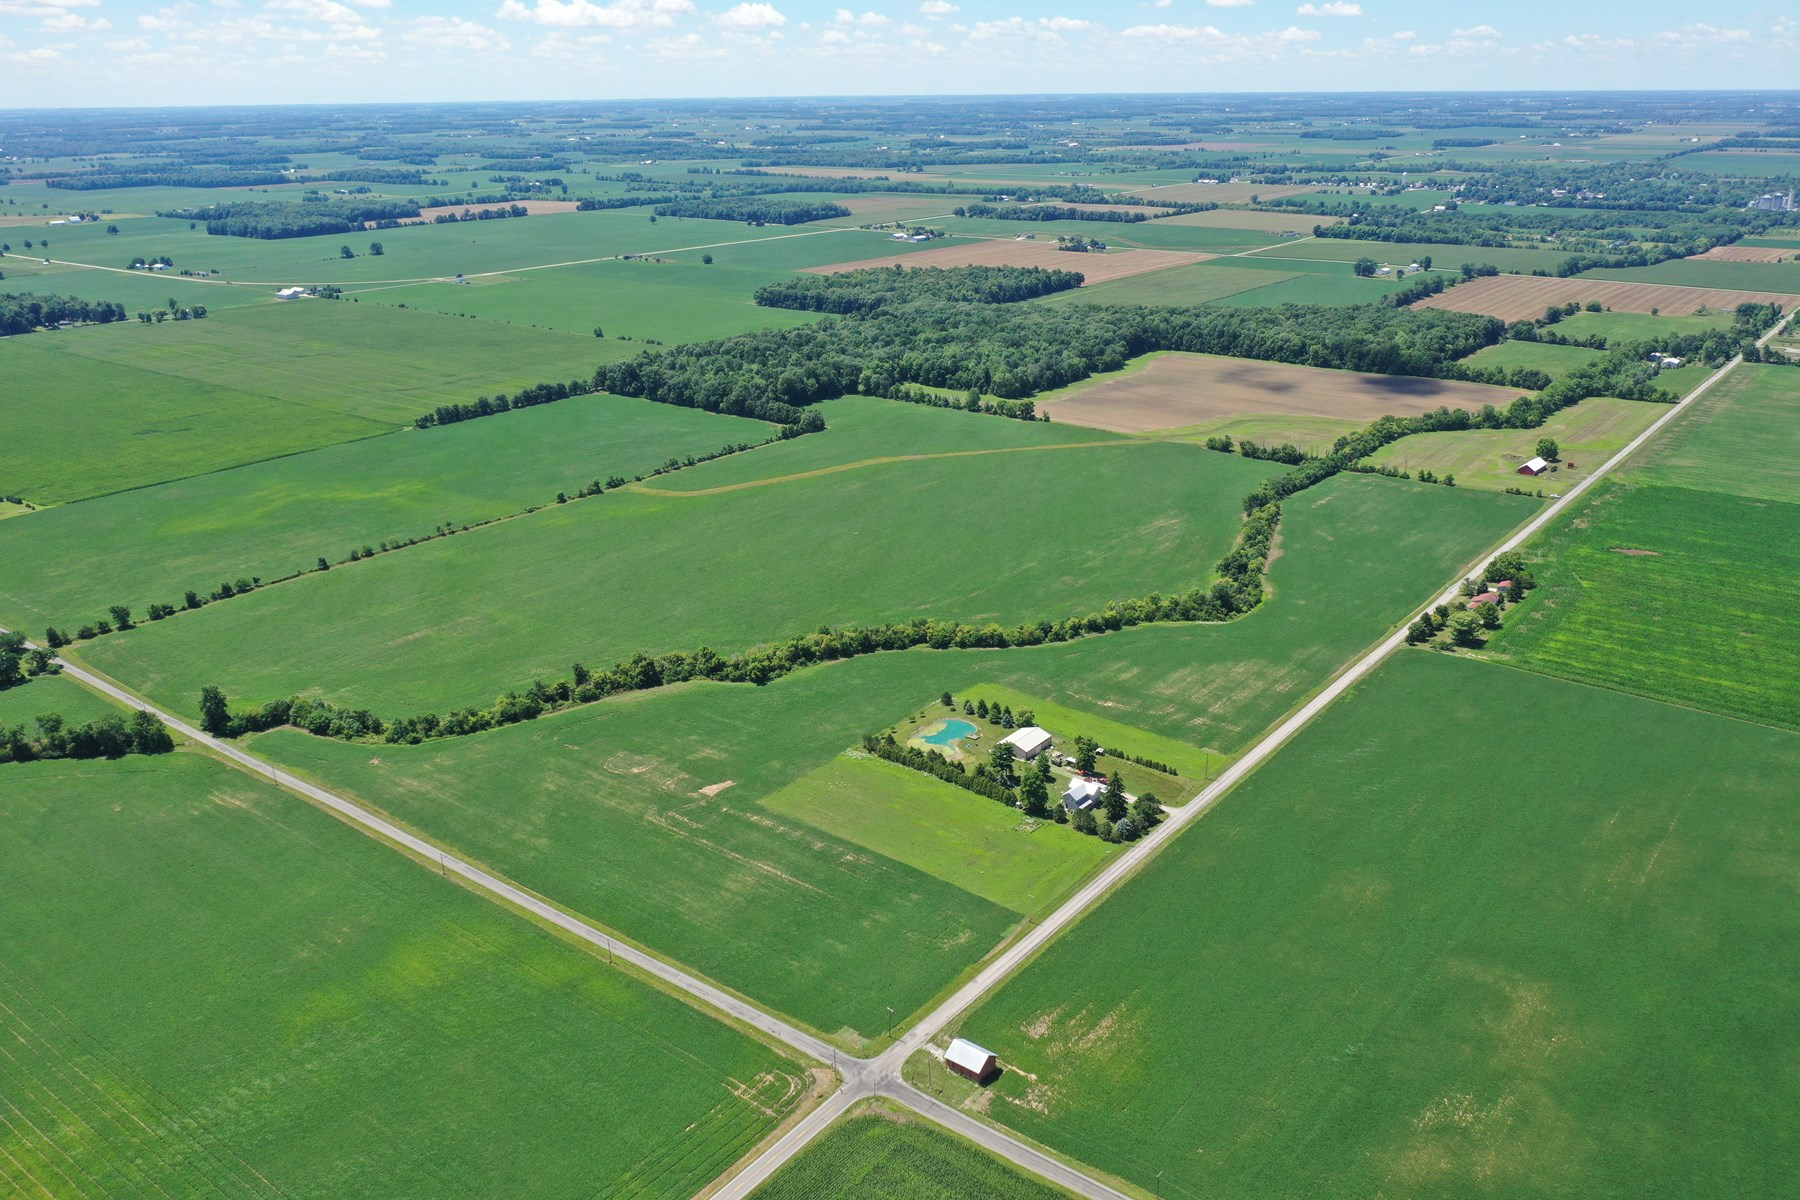 65.74 Acres +/- For Sale - Hancock County, Ohio